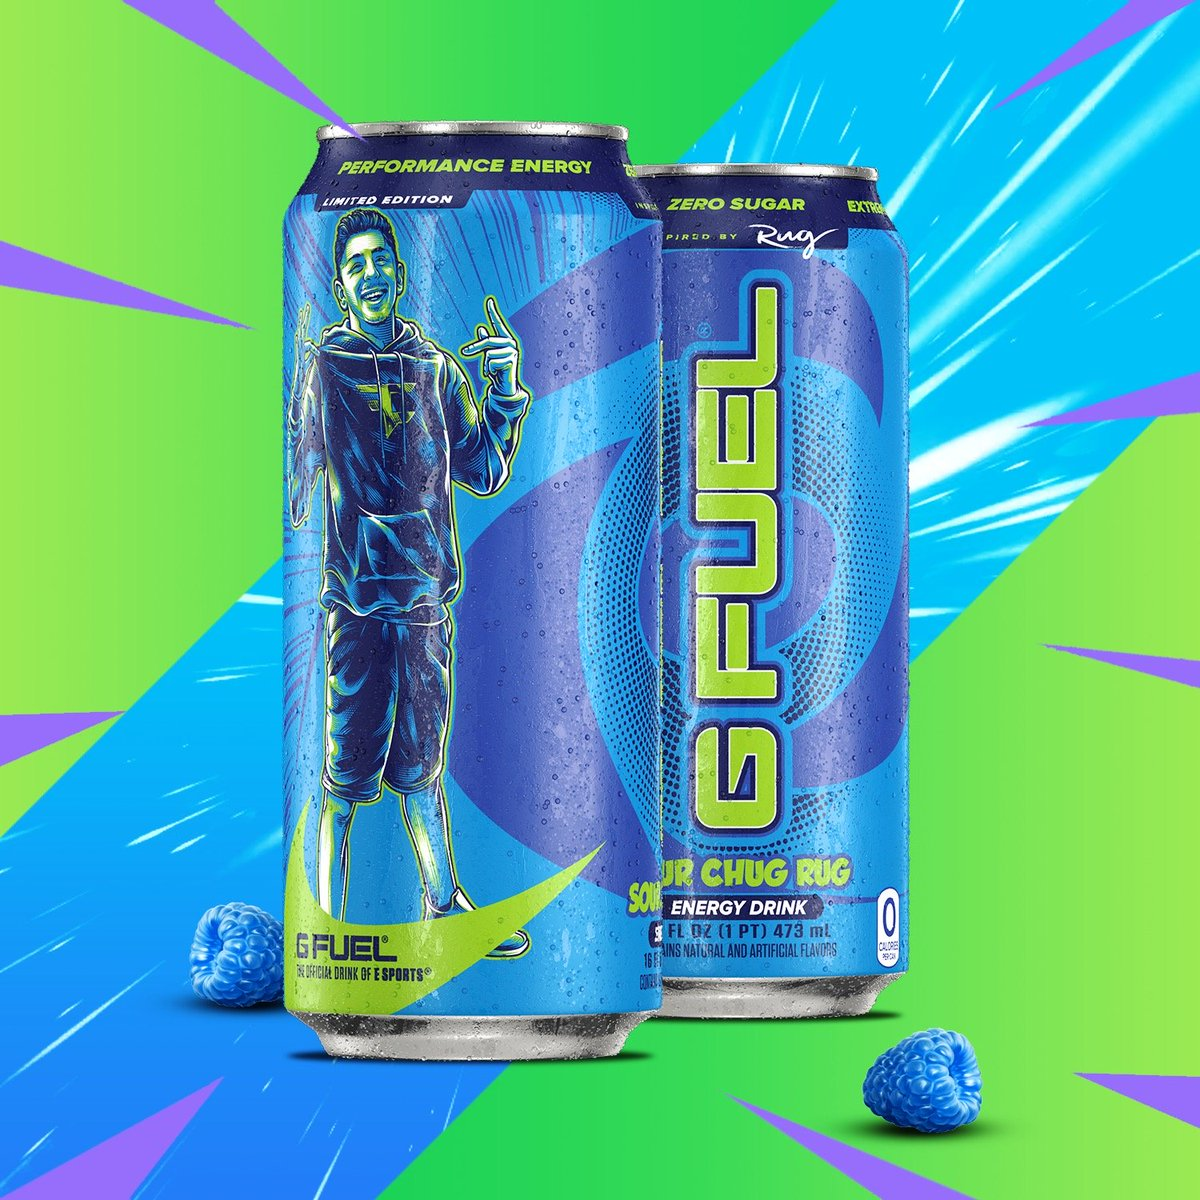 G Fuel On Twitter Icymi Our Fazerug Inspired Sour Blue Chug Rug Gfuelcan S Are Now Available Via Our Site Snag Yours Today At The Link Below As A 4 Pack Or 12 Pack